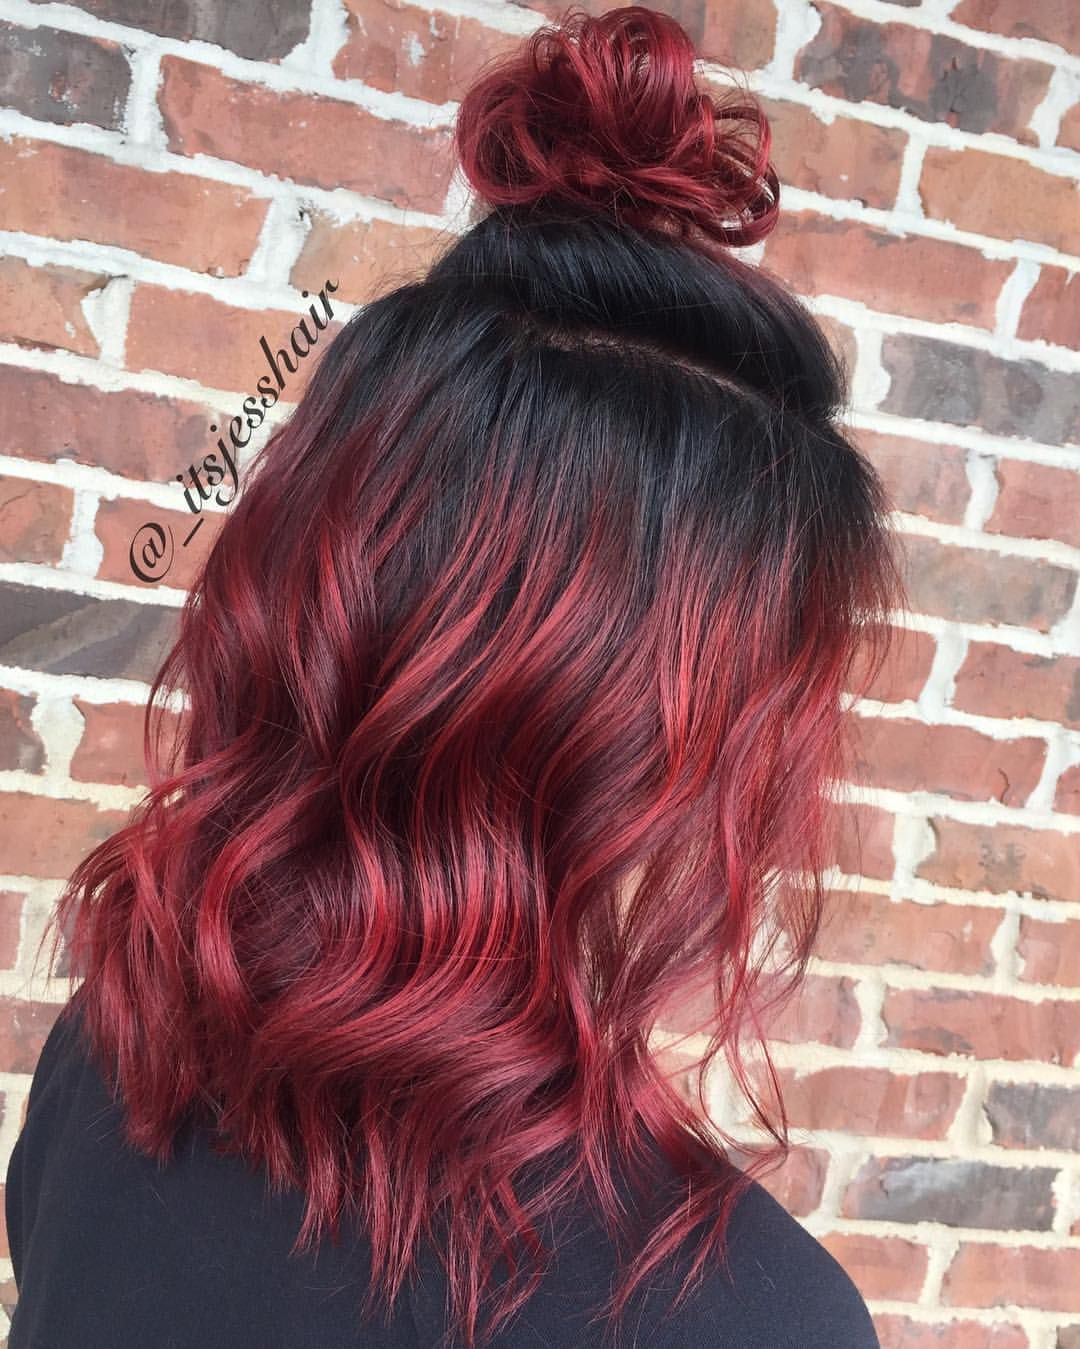 Black Roots Red Hair Design is one of the Model ideas